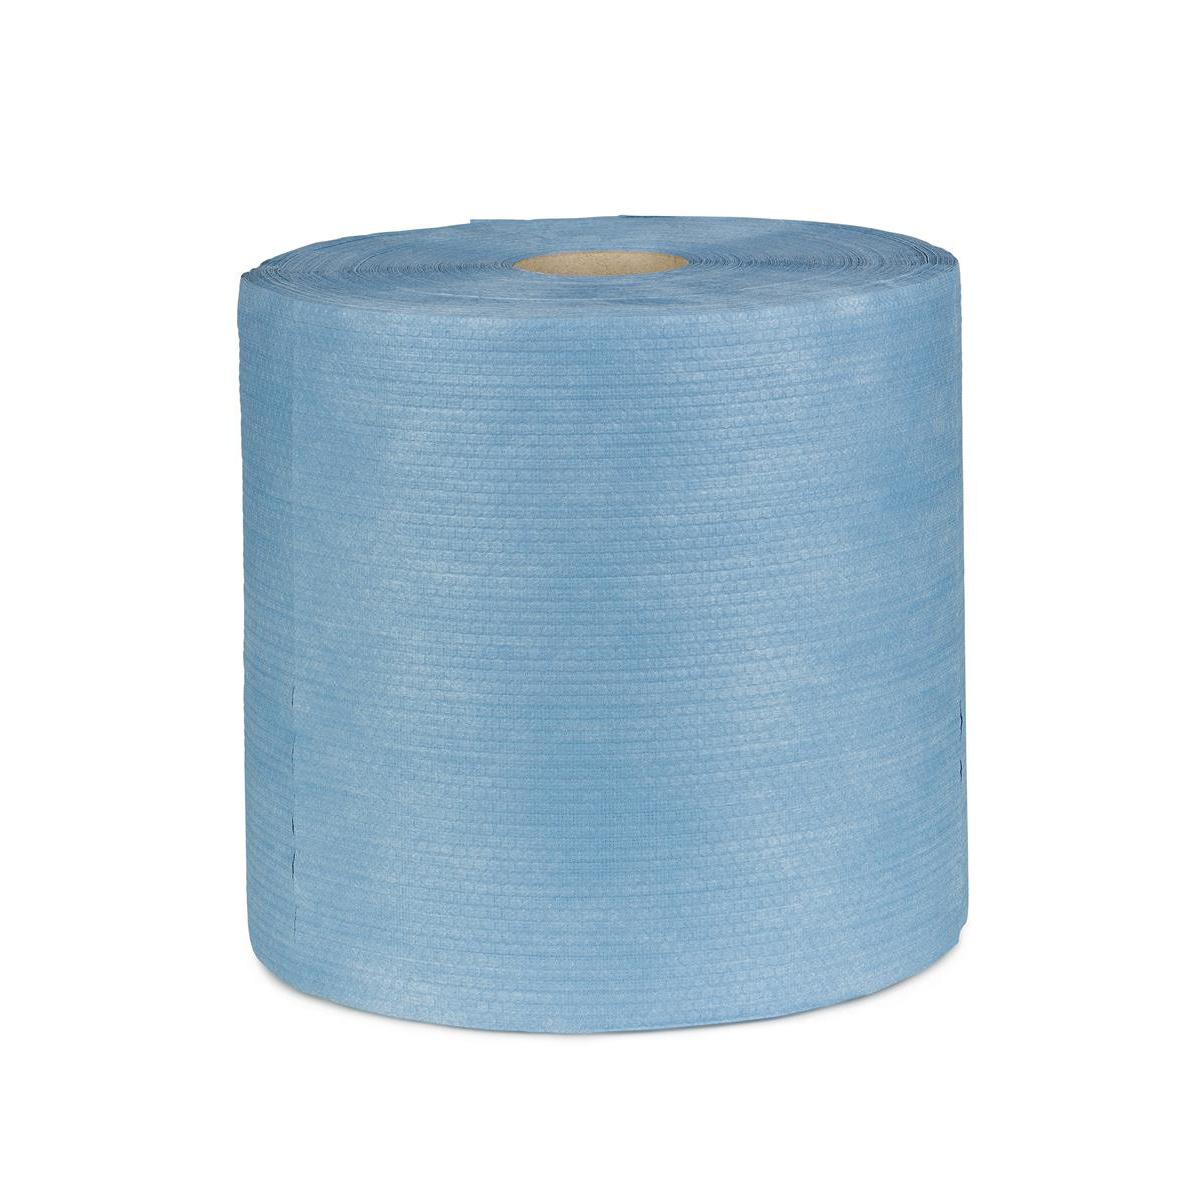 5 Star Facilities Cloths Super Absorbent H/Duty Low Lint Solvent-resistant 110gsm 30x36cm Blue Roll 500